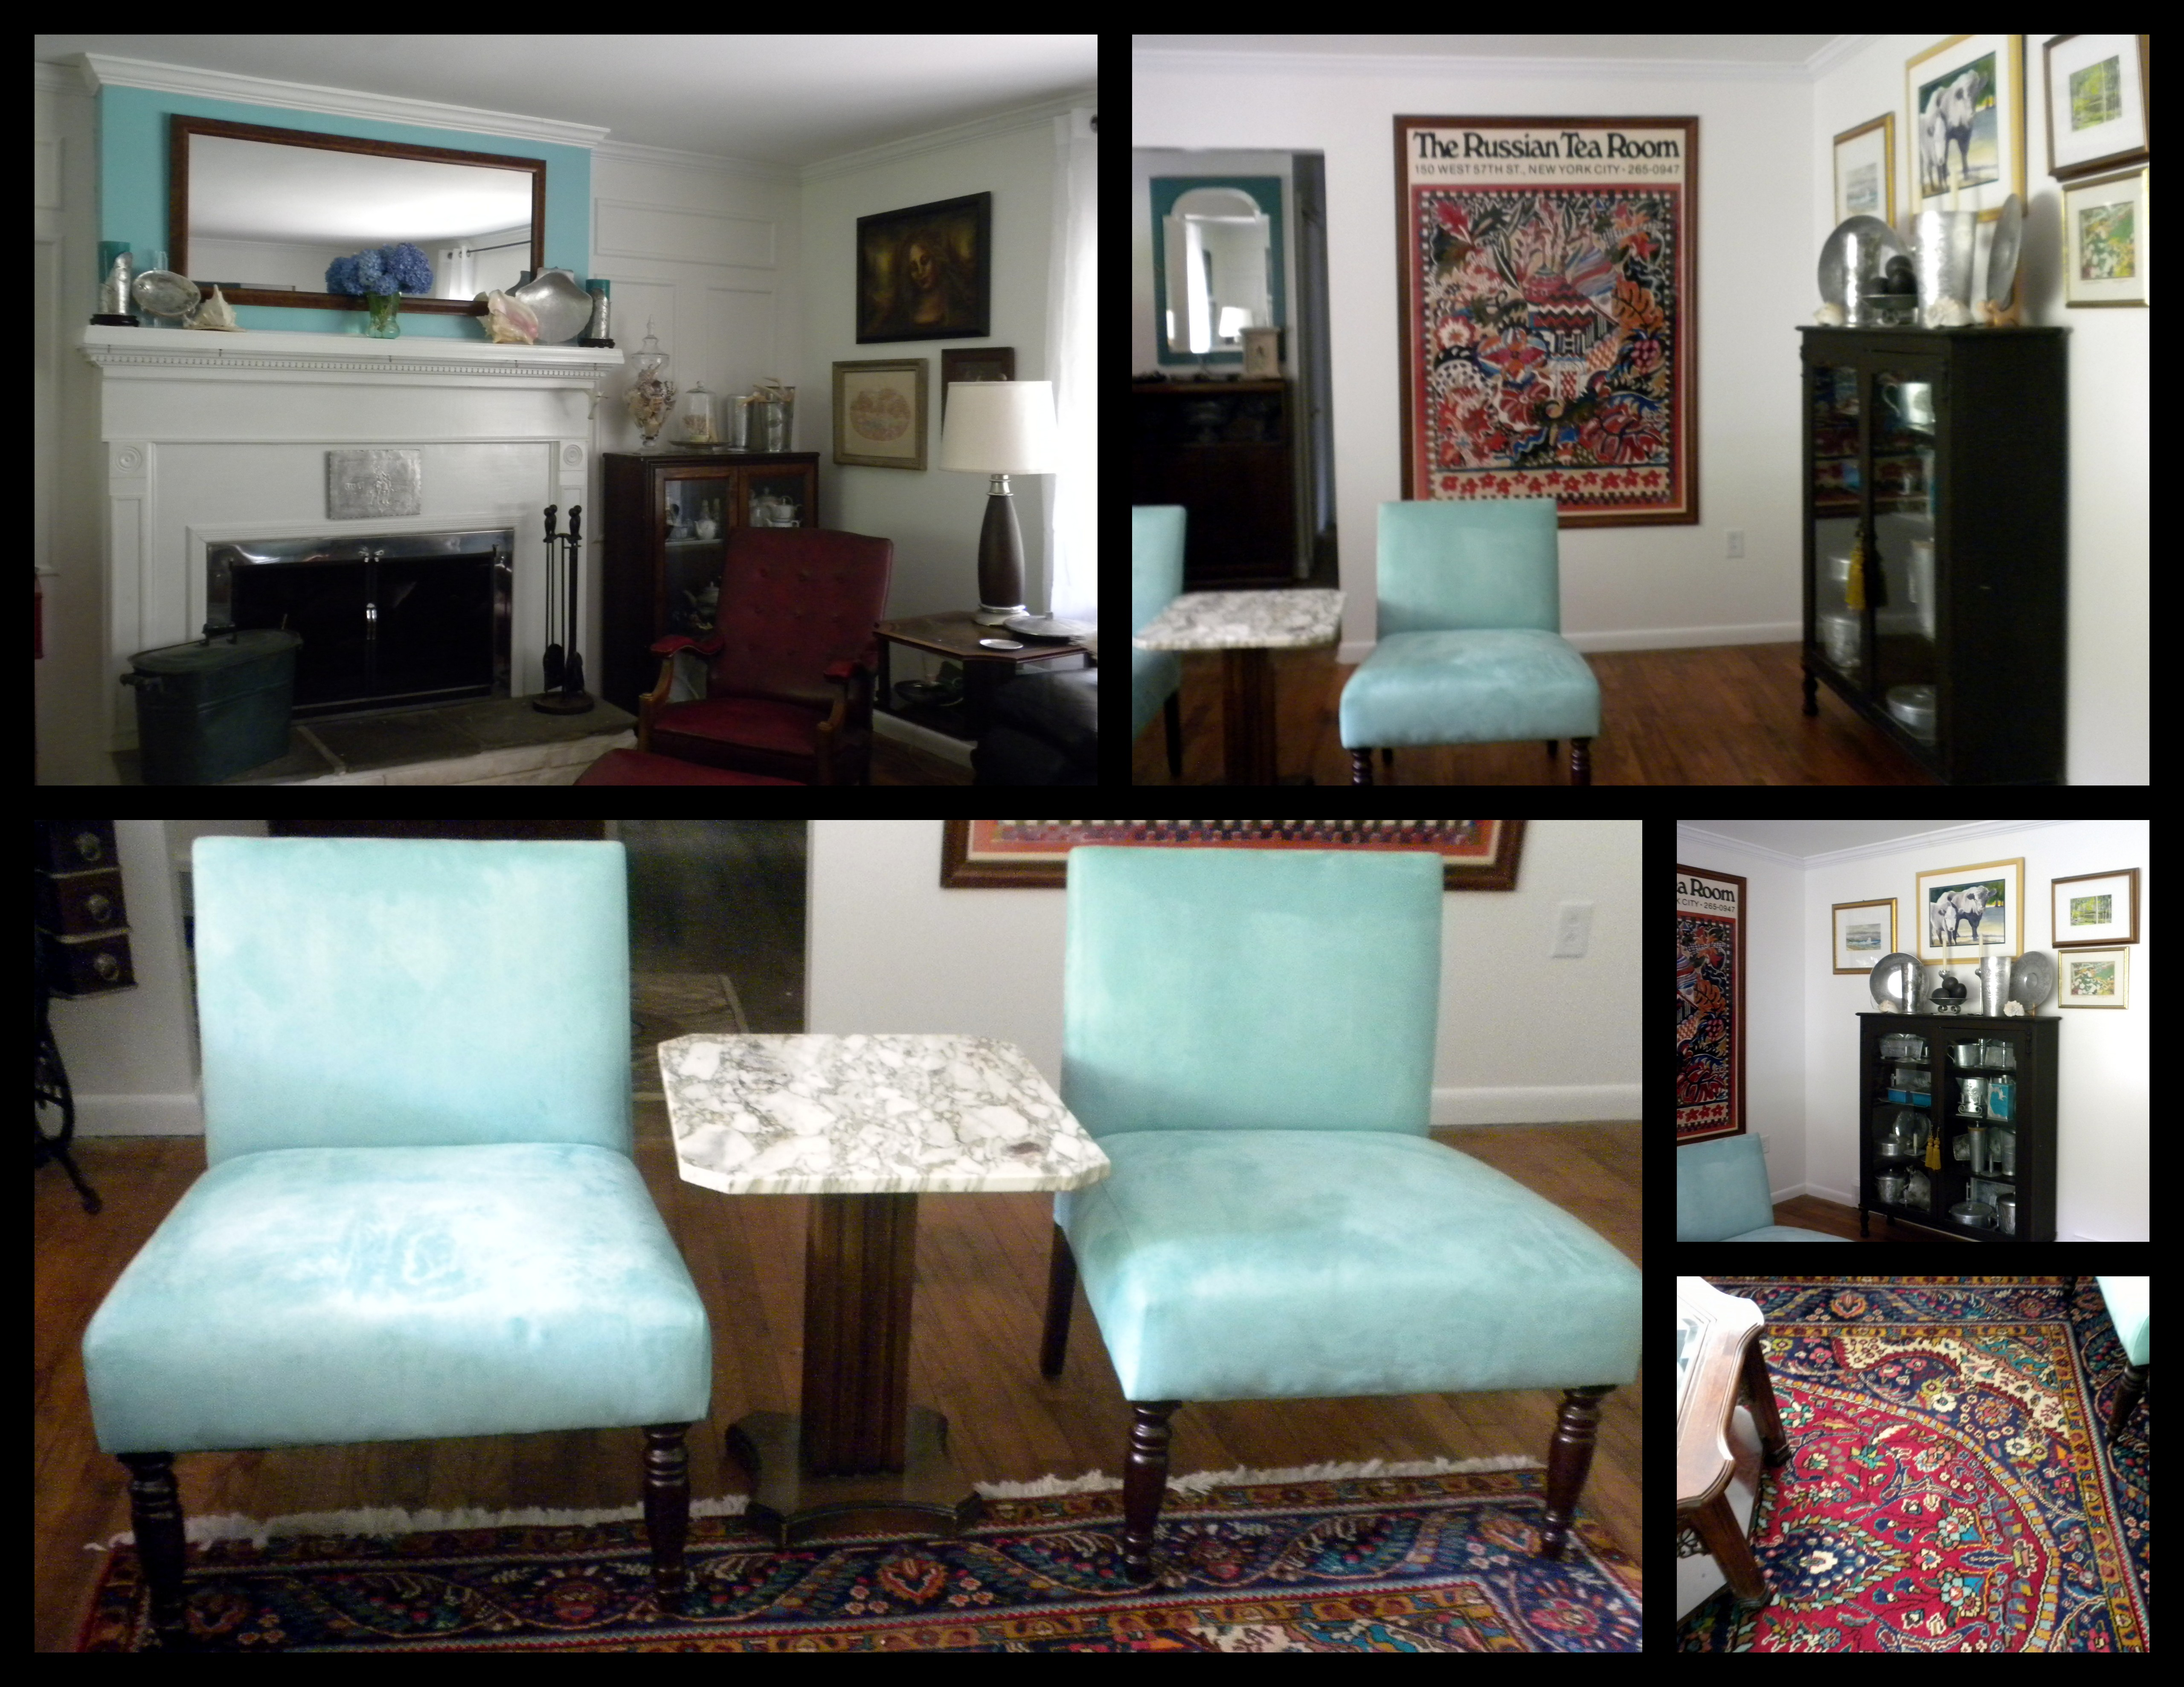 The shades of greens and blues were inspired by the persian carpet in the living room as well as the mid century la mirada pottery used by wendell august